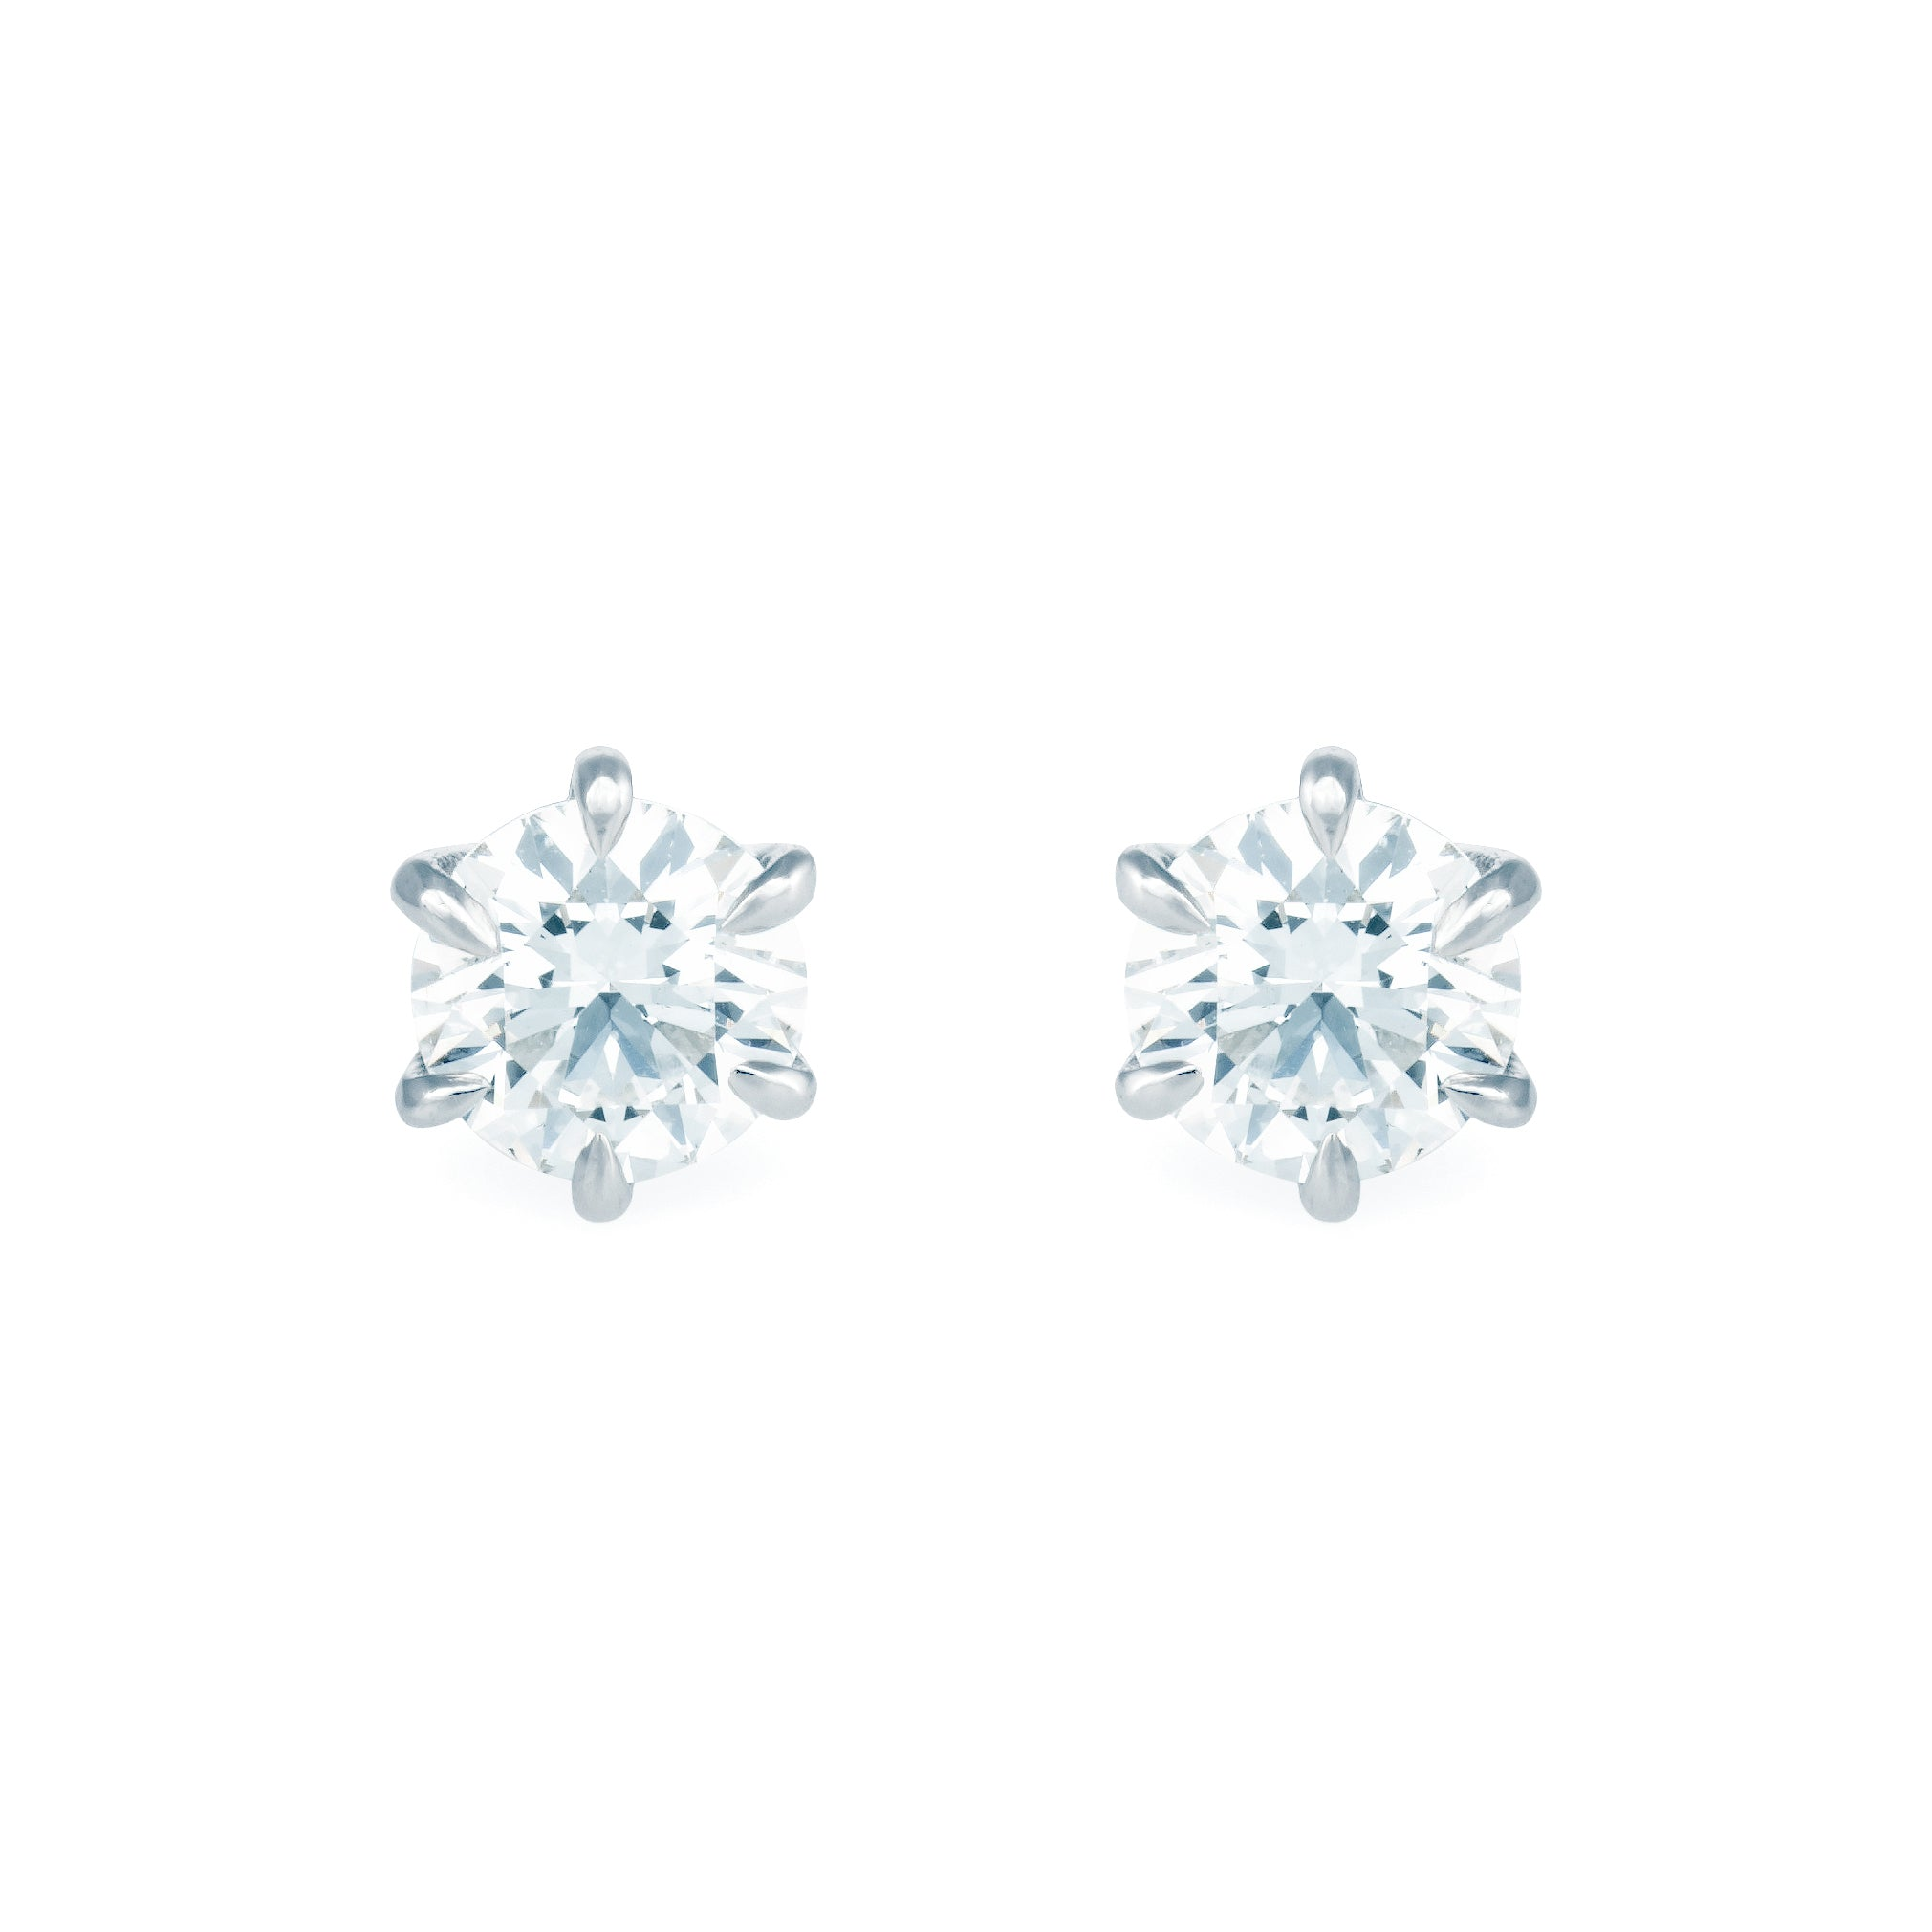 canada arrera velazquez product zquez add diamonds y diamond vel carrera wg solitaire with earrings